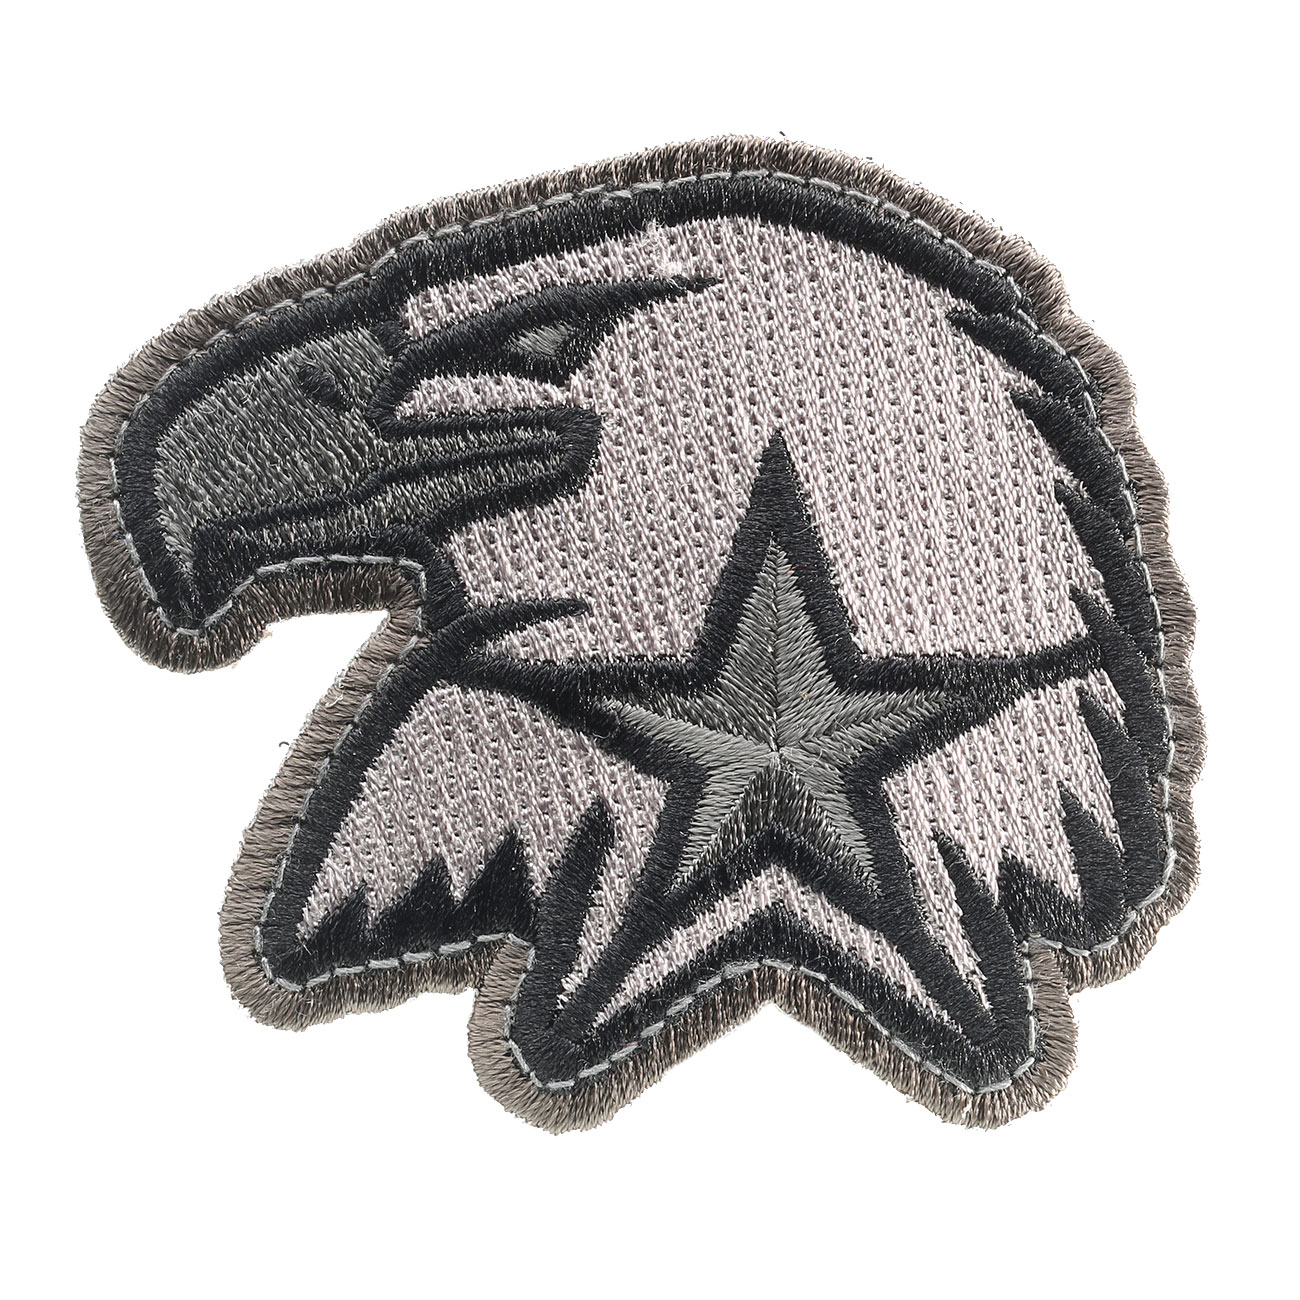 Mil-Spec Monkey Patch Eagle Star urban 0